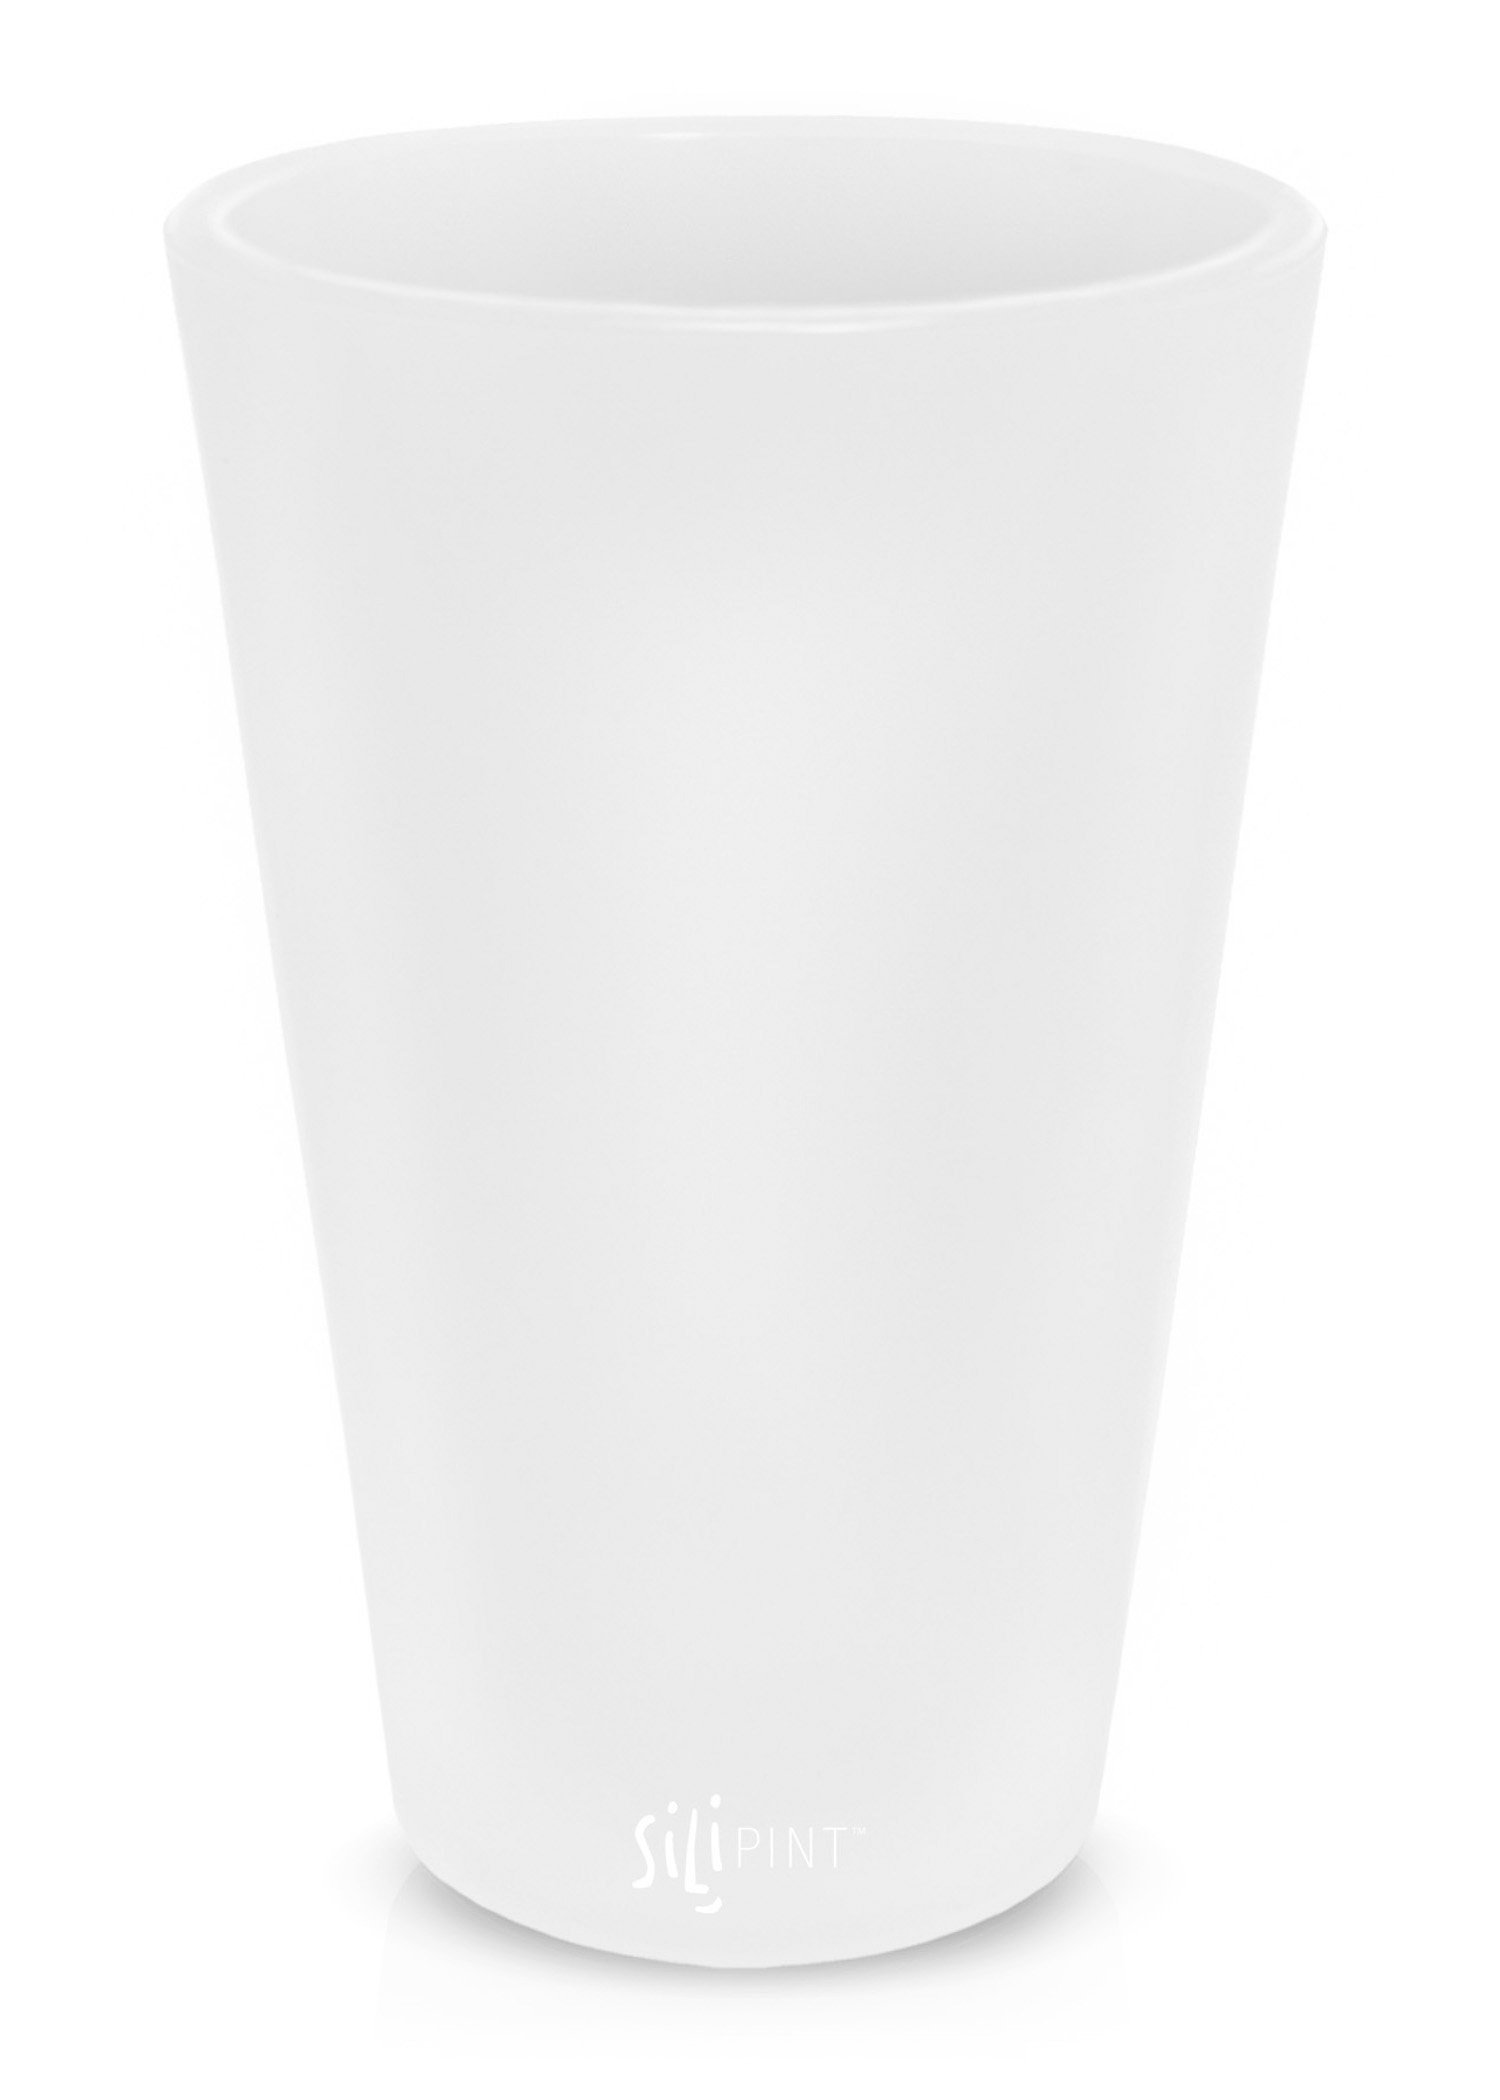 Silipint Silicone Pint Glass, Patented, BPA-Free, Shatter-proof, Unbreakable Silicone Cup Drinkware (Single, Frosted White) by Silipint